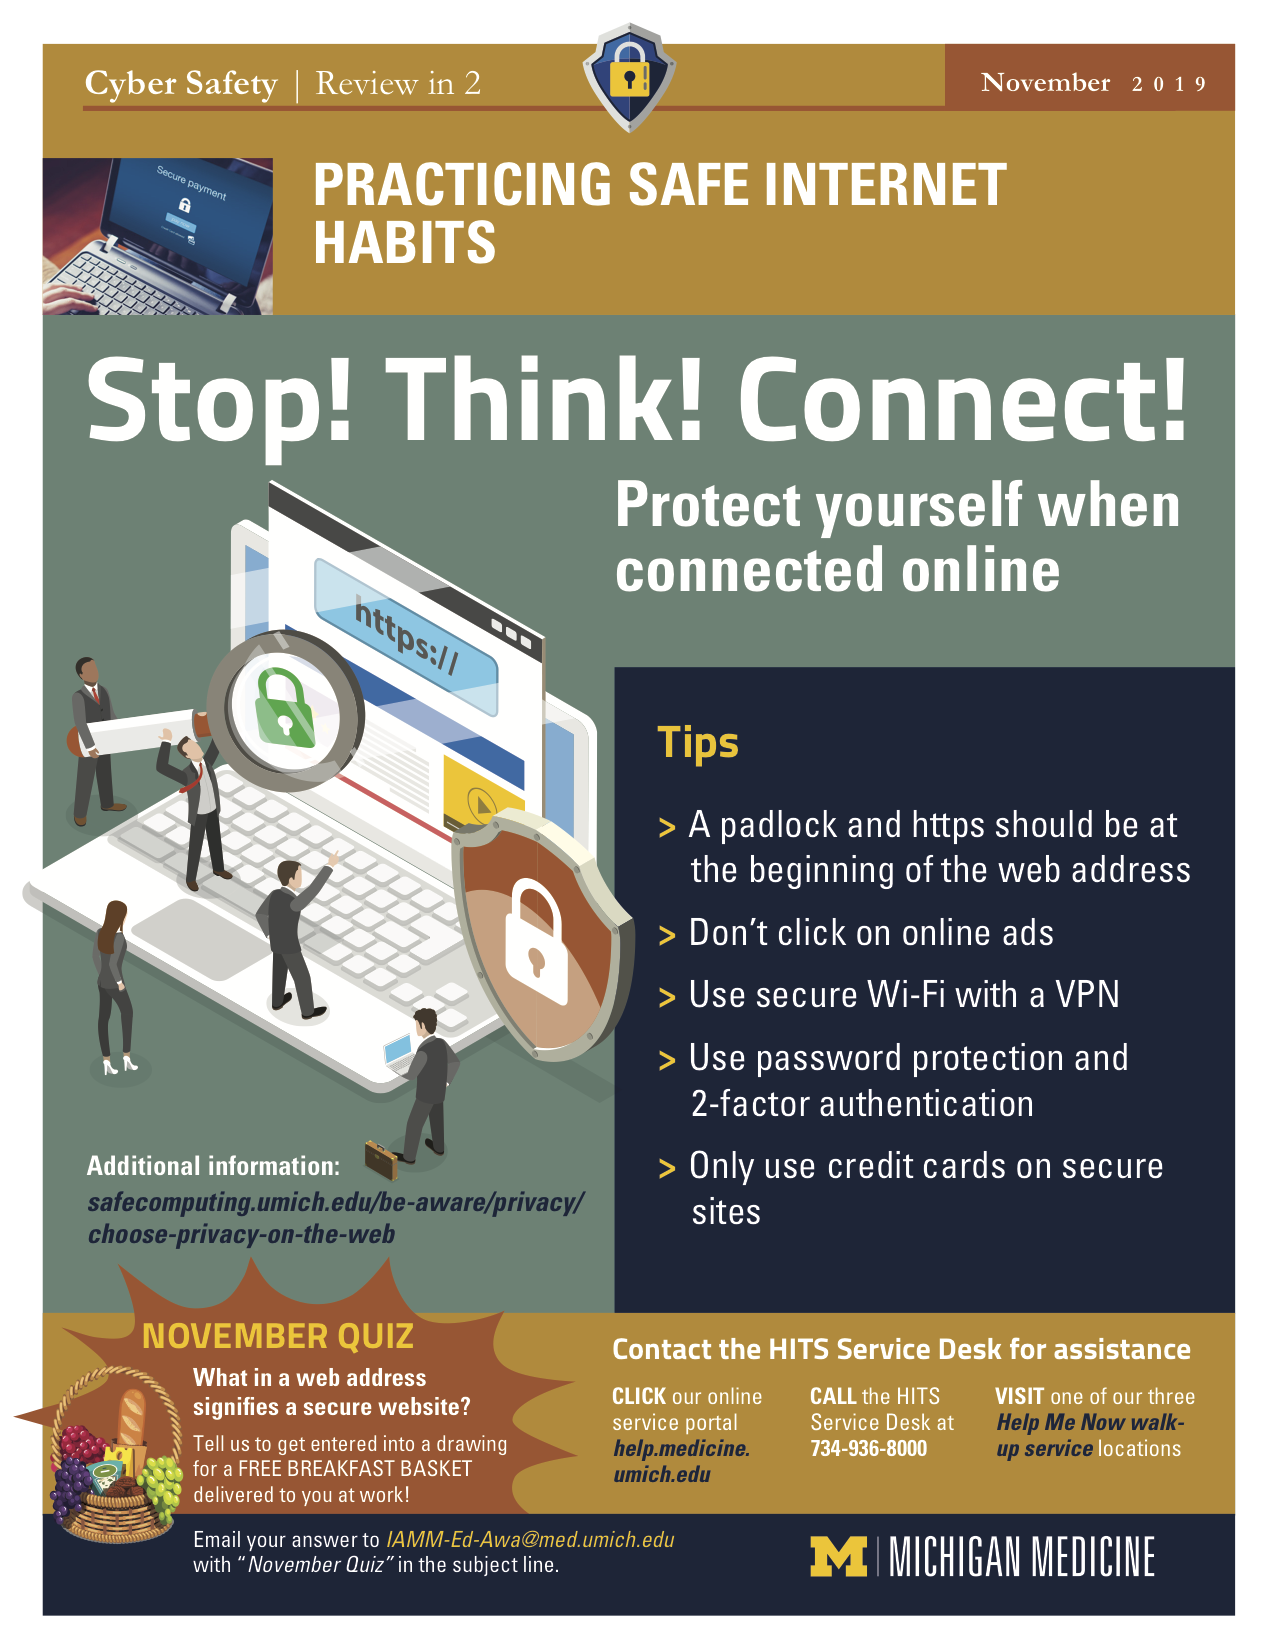 Practice safe internet use habits. Stop. Think. Connect.